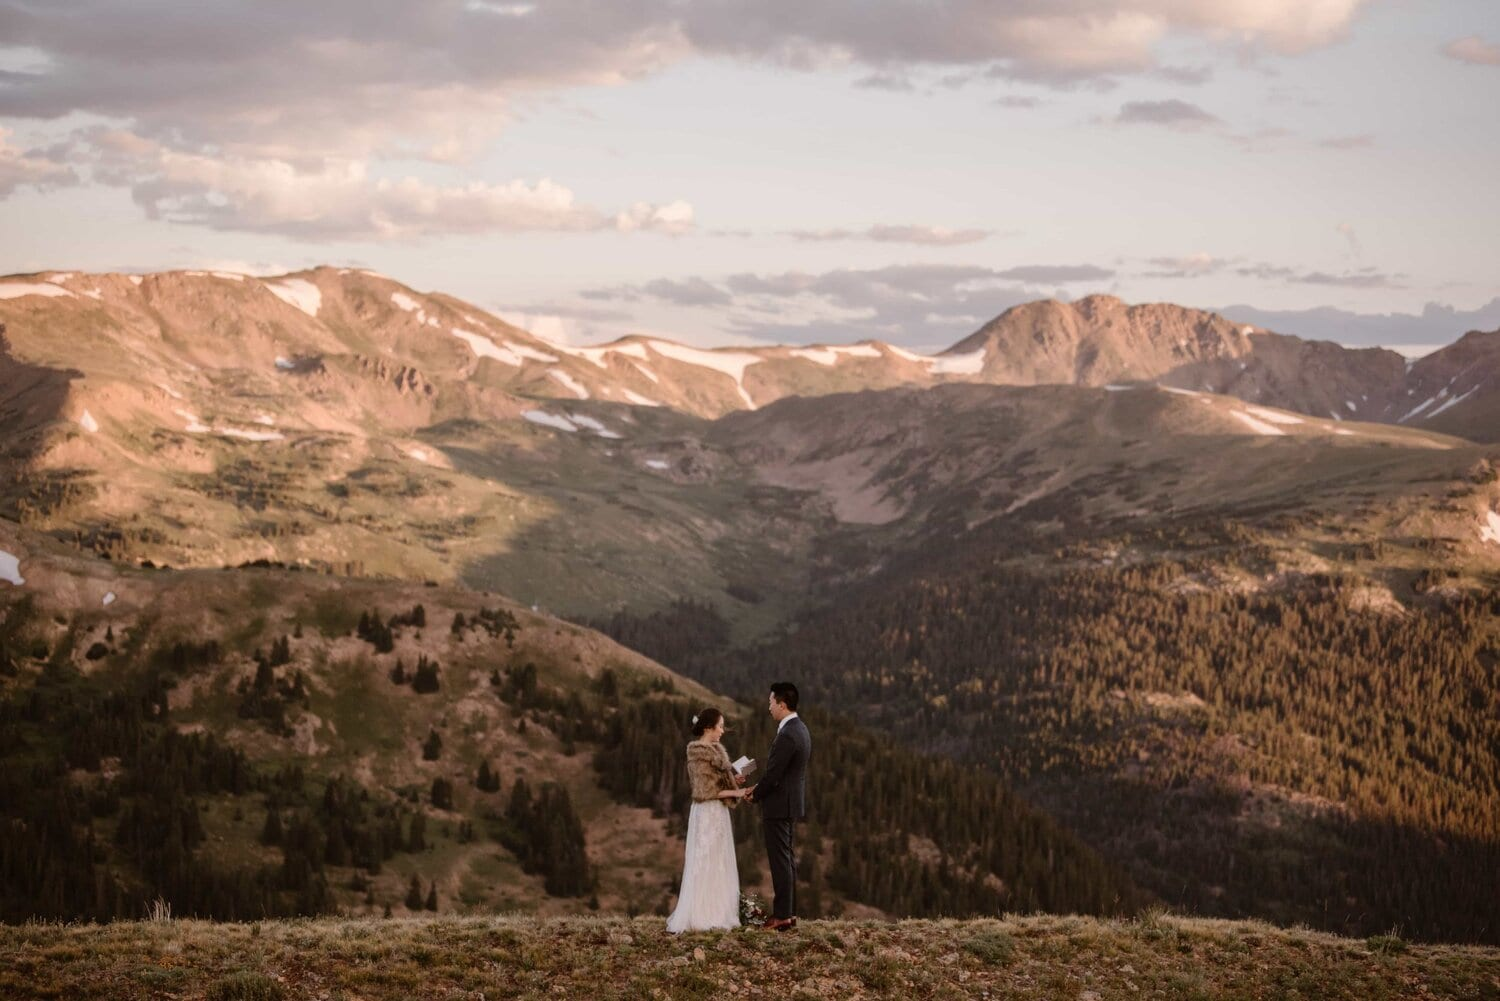 Bride and groom exchange vows on top of a mountain during their wedding ceremony.